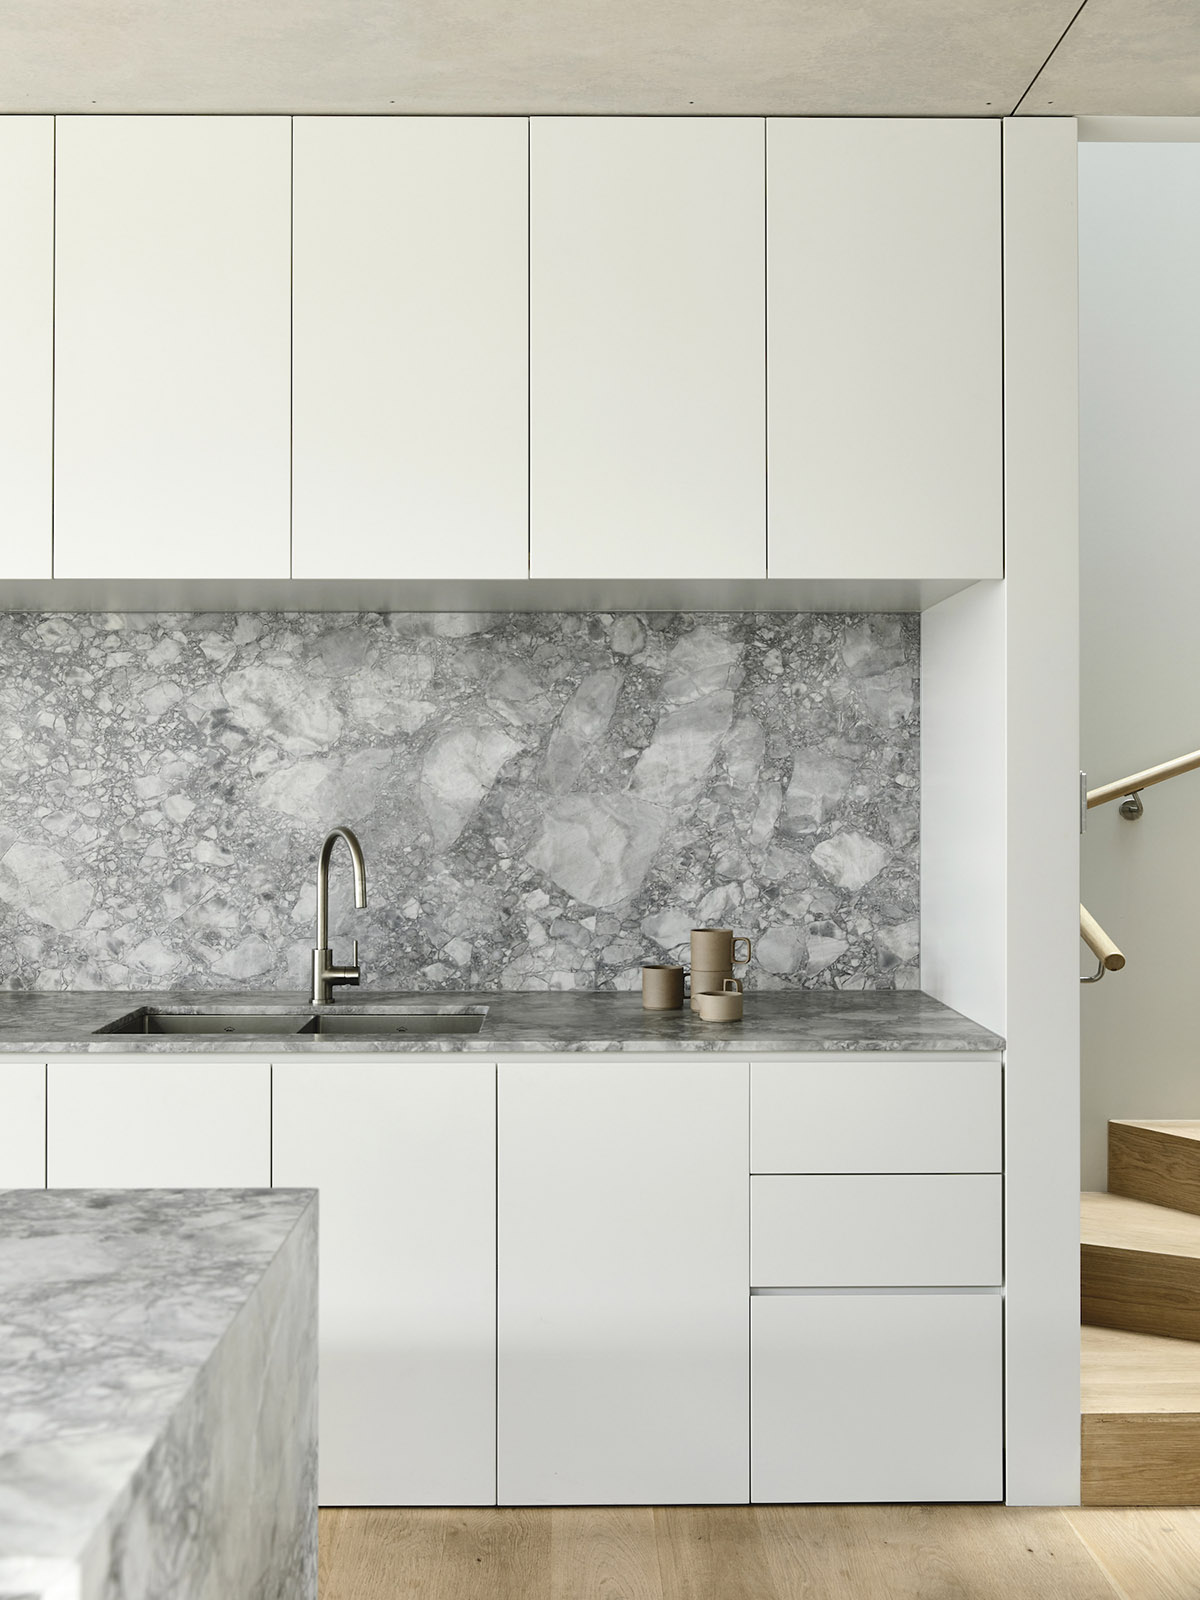 est-living-rob-kennon-architects-fitzroy-north-02-07